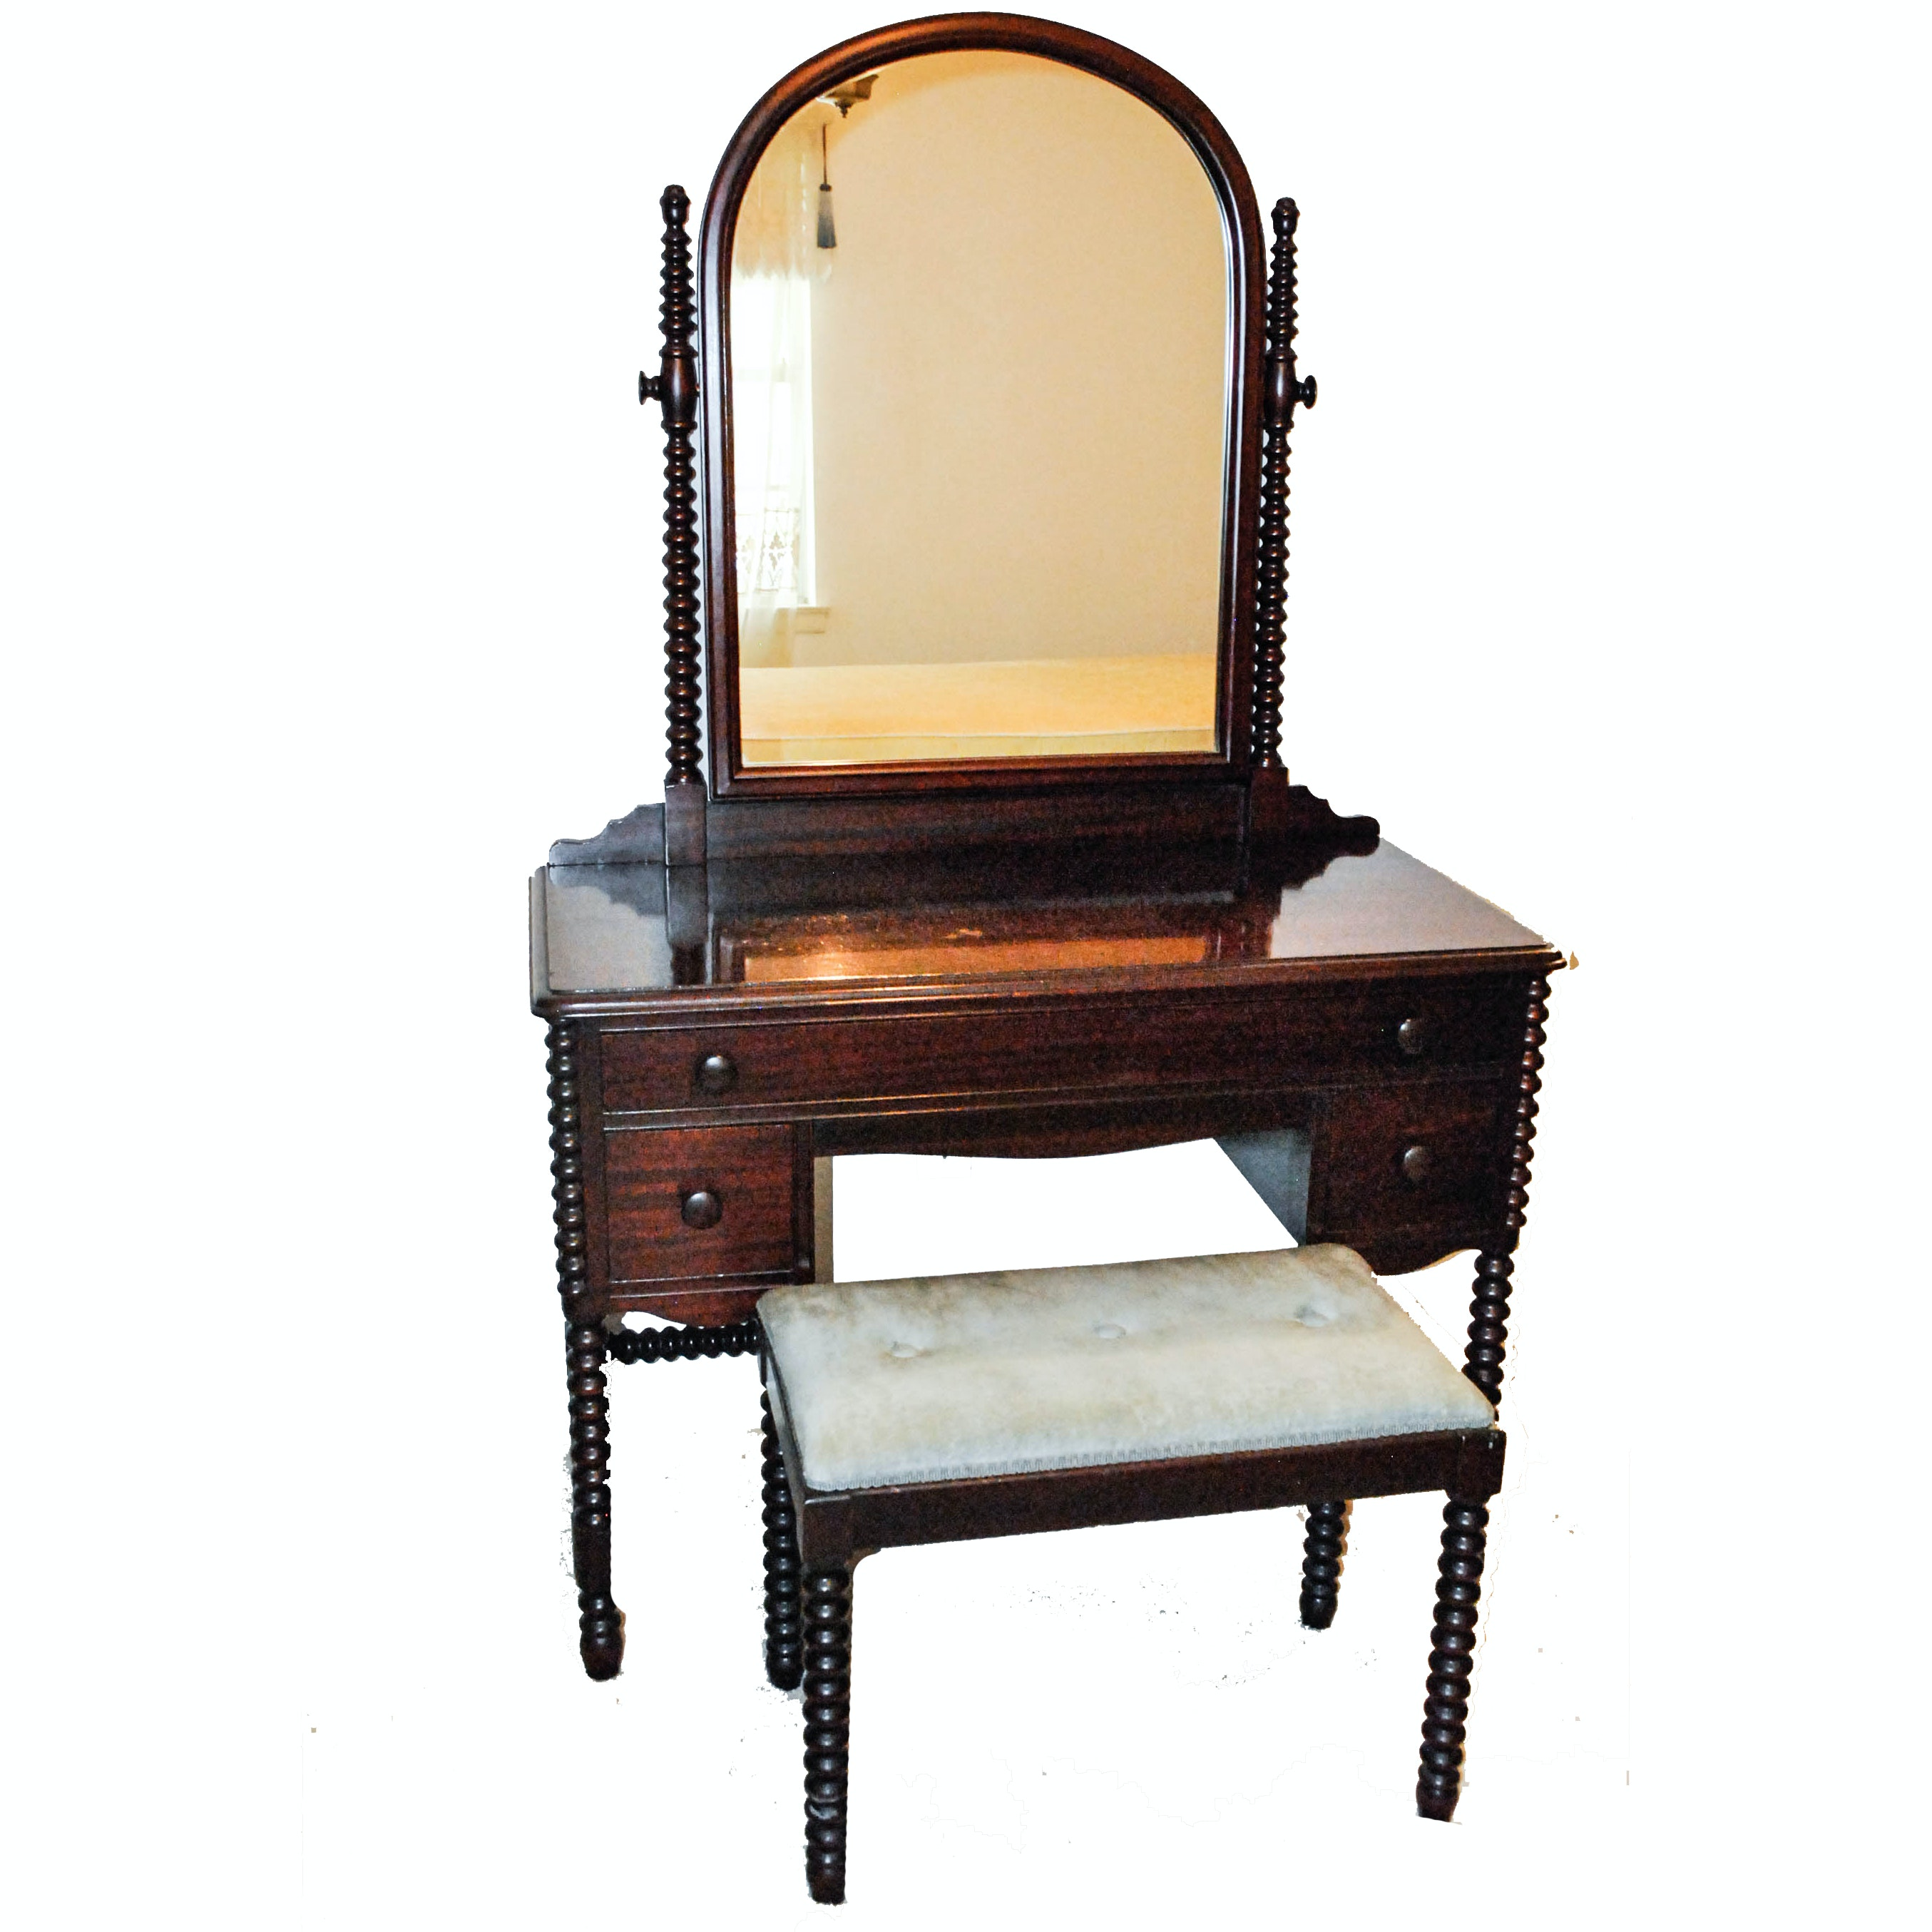 Bobbin Leg Vanity and Bench by Wheeler-Okell